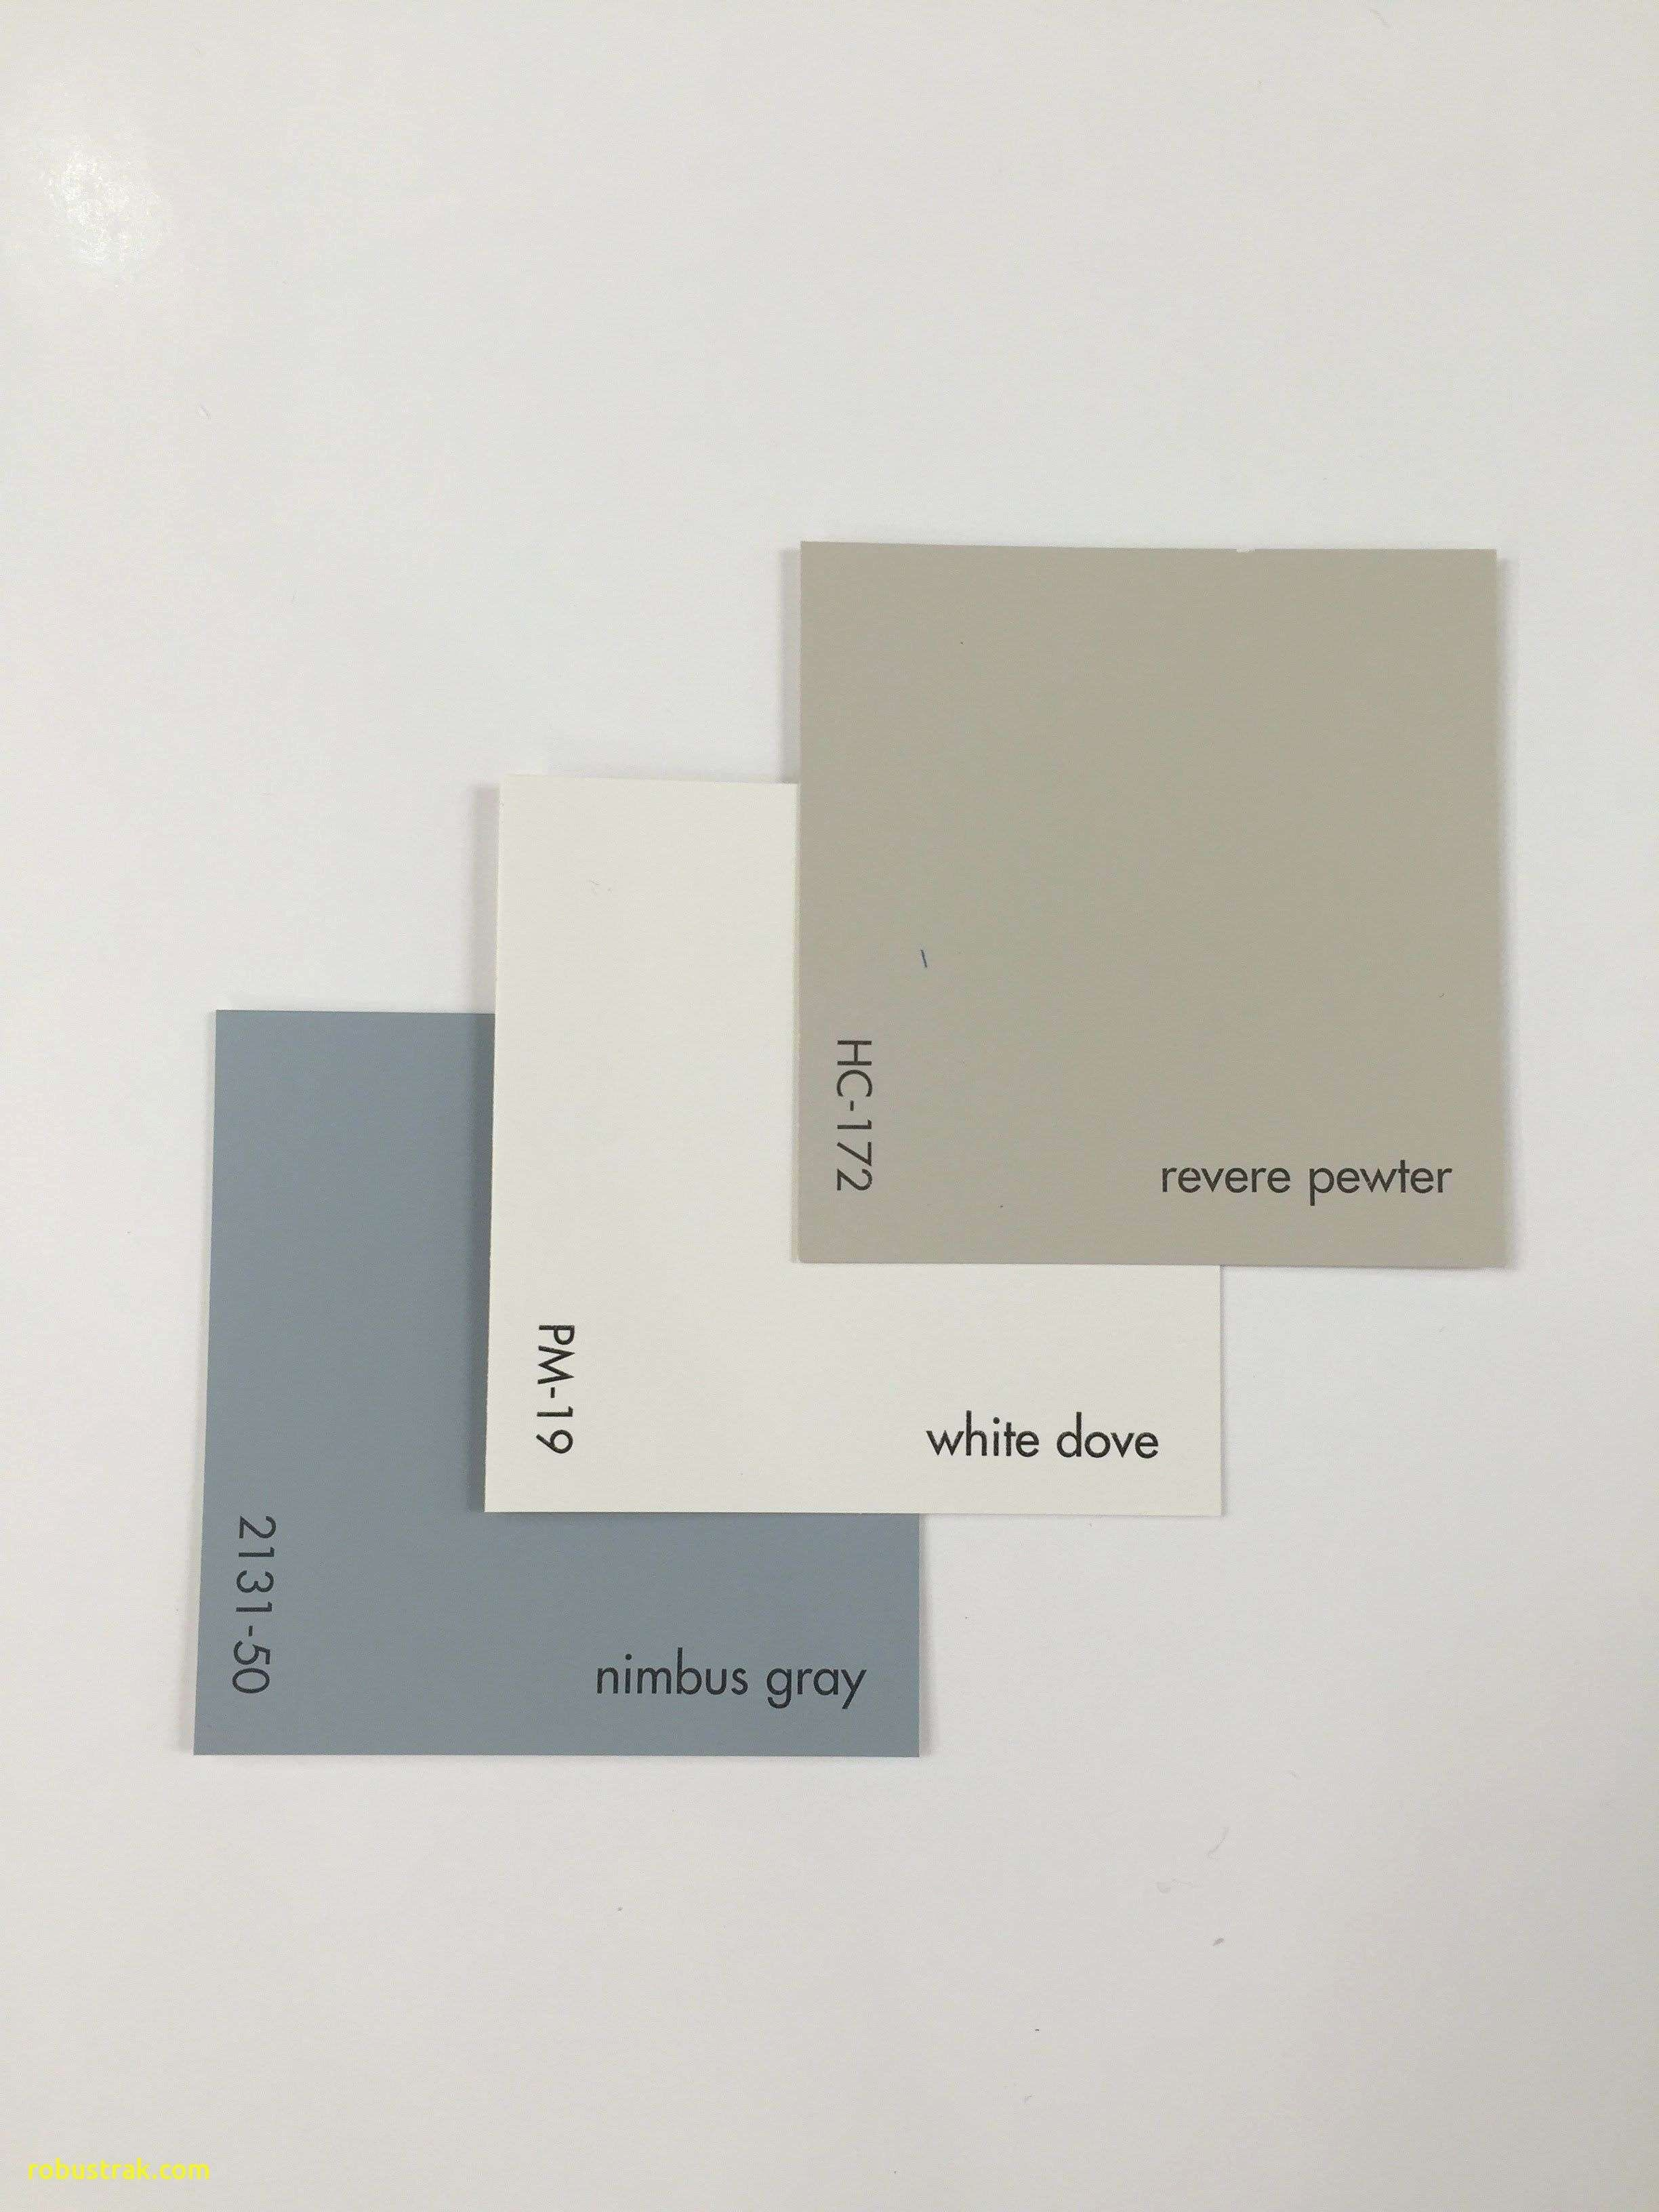 Benjamin Moore Nimbus Awesome Revere Pewter Exterior Beautiful Benjamin Moore Neutr Exterior Paint Colors For House Paint Colors For Home Exterior Paint Colors